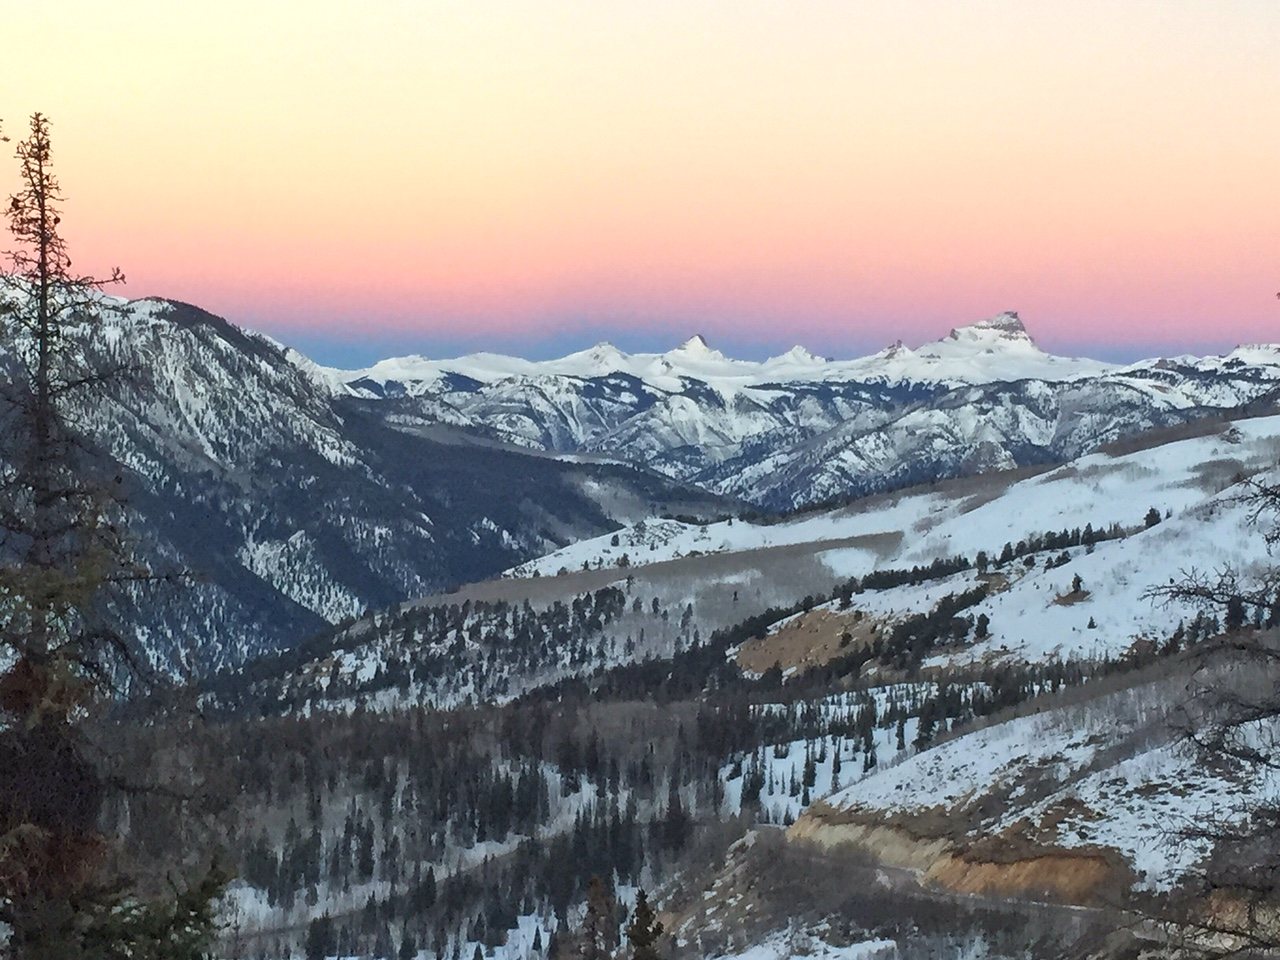 Wetterhorn and Uncompahgre in the distance….a great adventure!